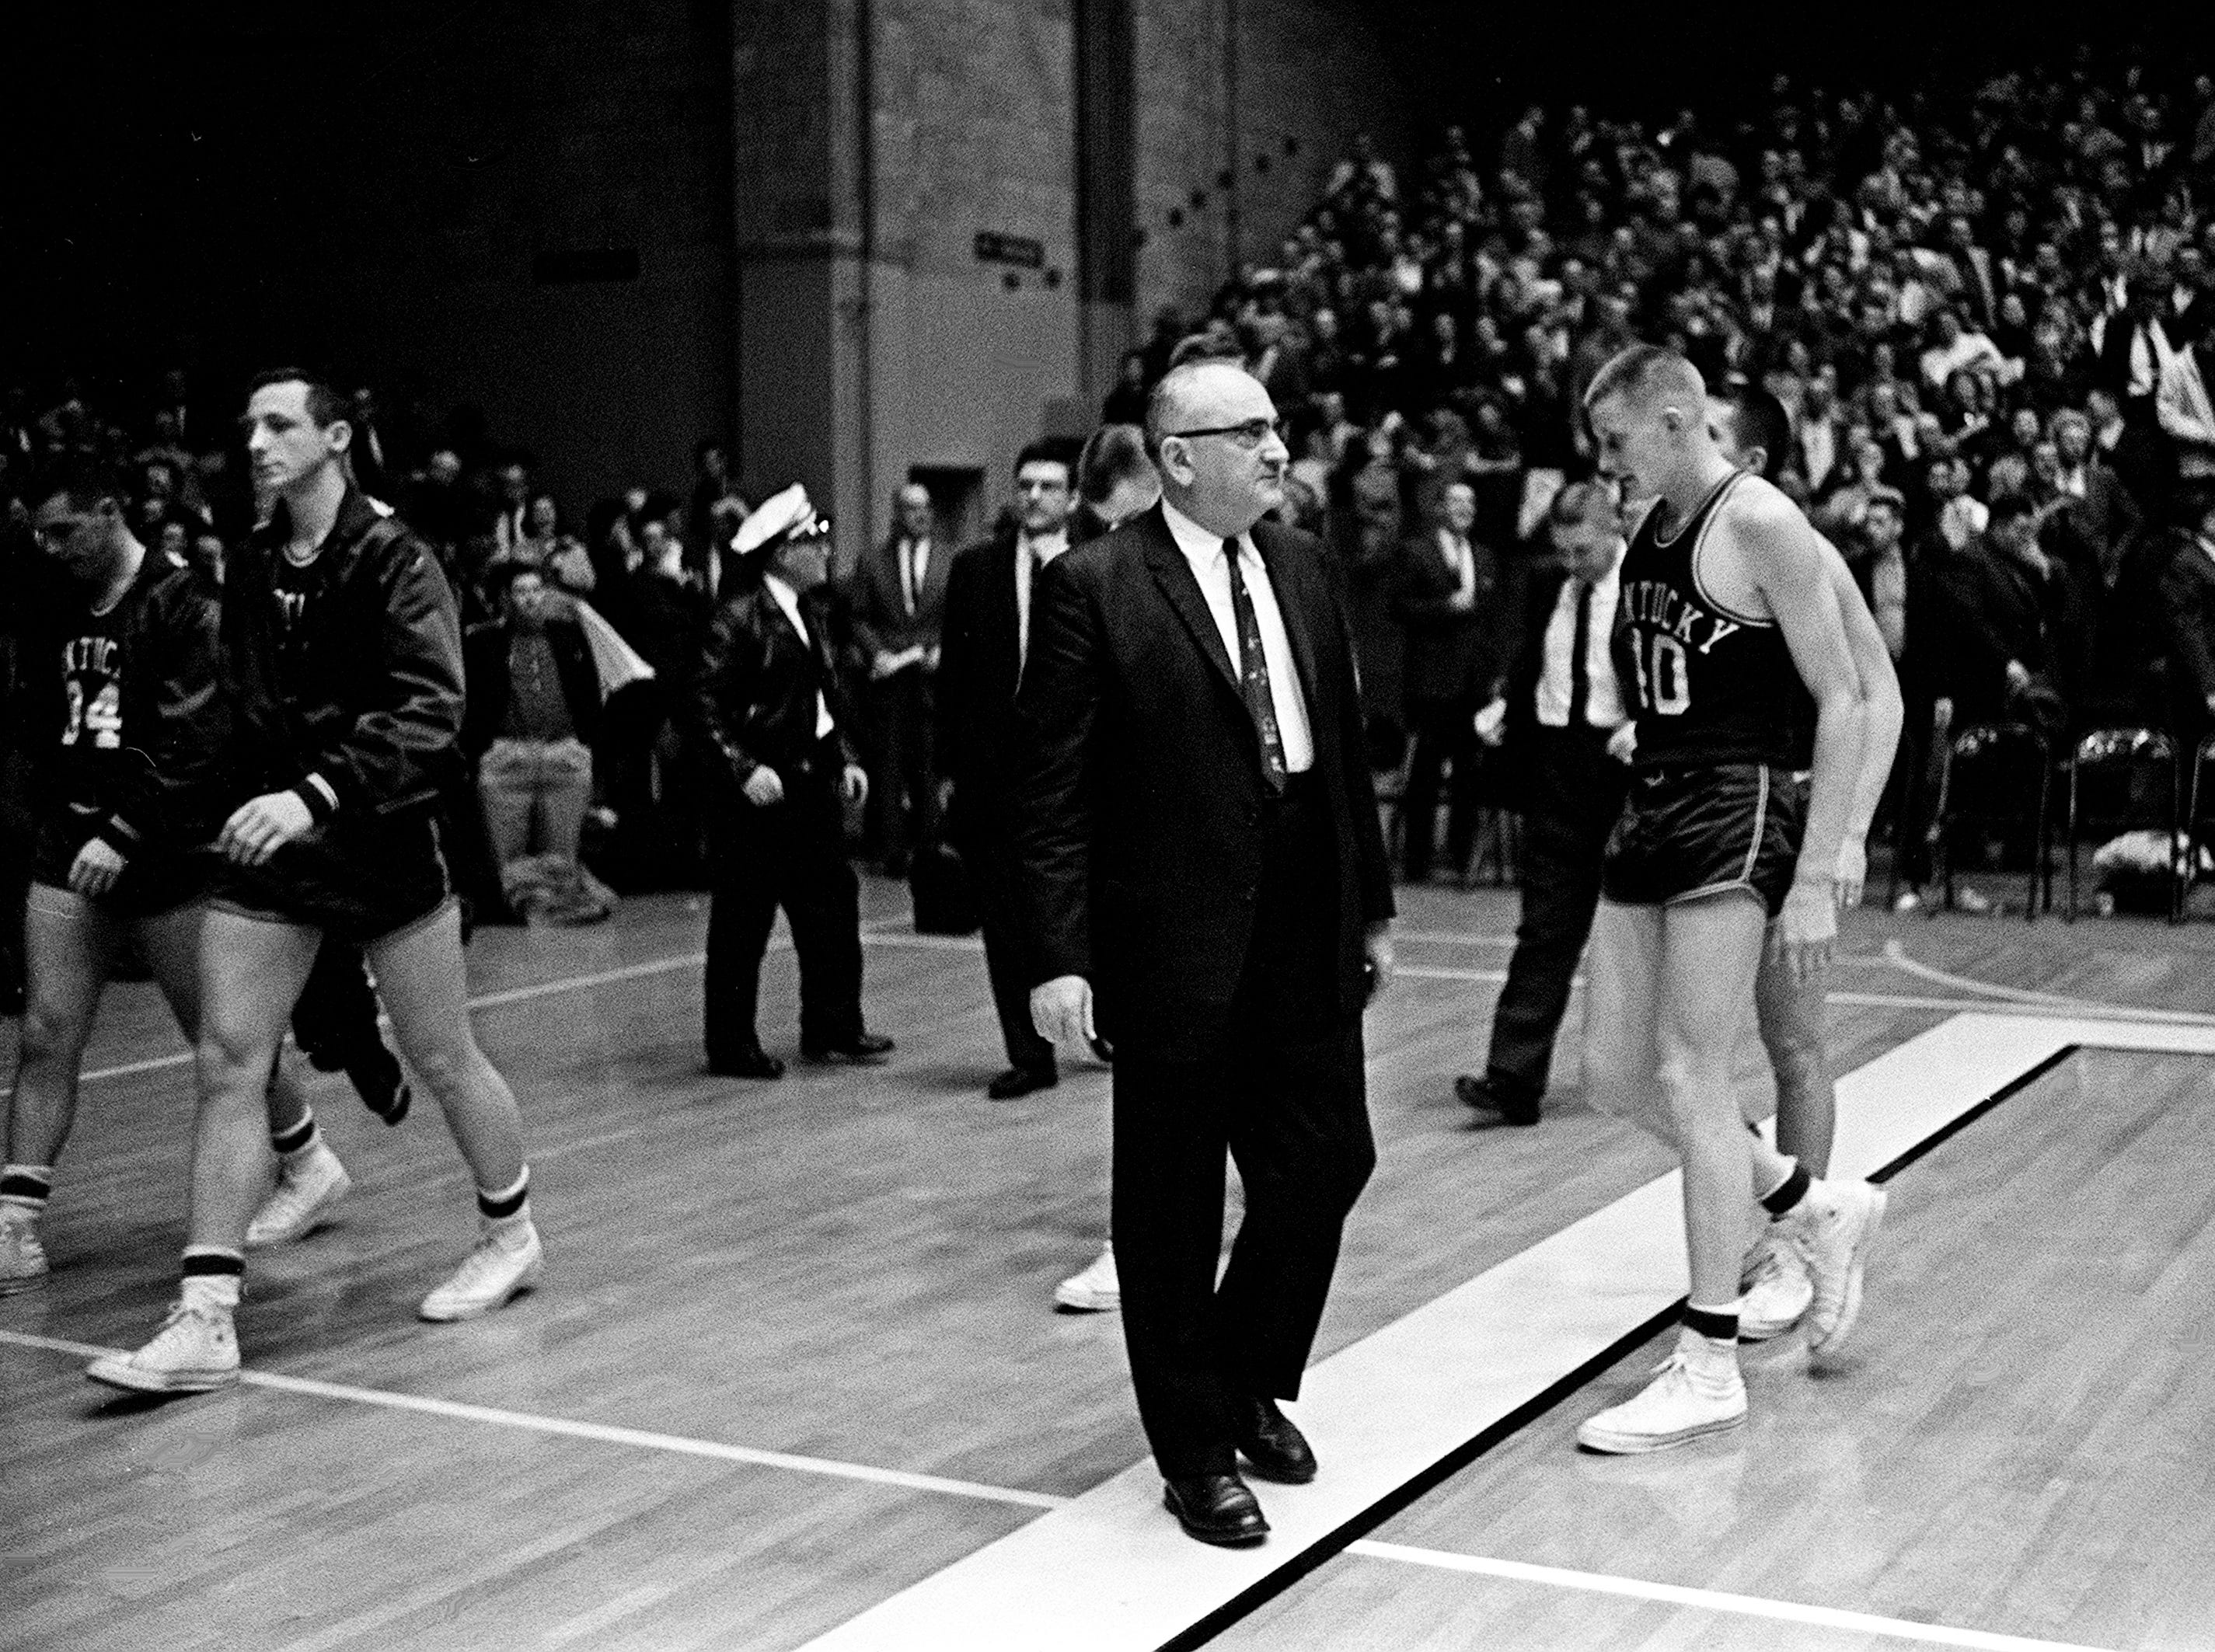 An unhappy Kentucky head coach Adolph Rupp and his players walks off the court after been defeated by Vanderbilt Jan. 9, 1961. The Wildcats became the Commodores' 11th straight victim, falling 64-62 before 7,324 fans at Memorial Gym.